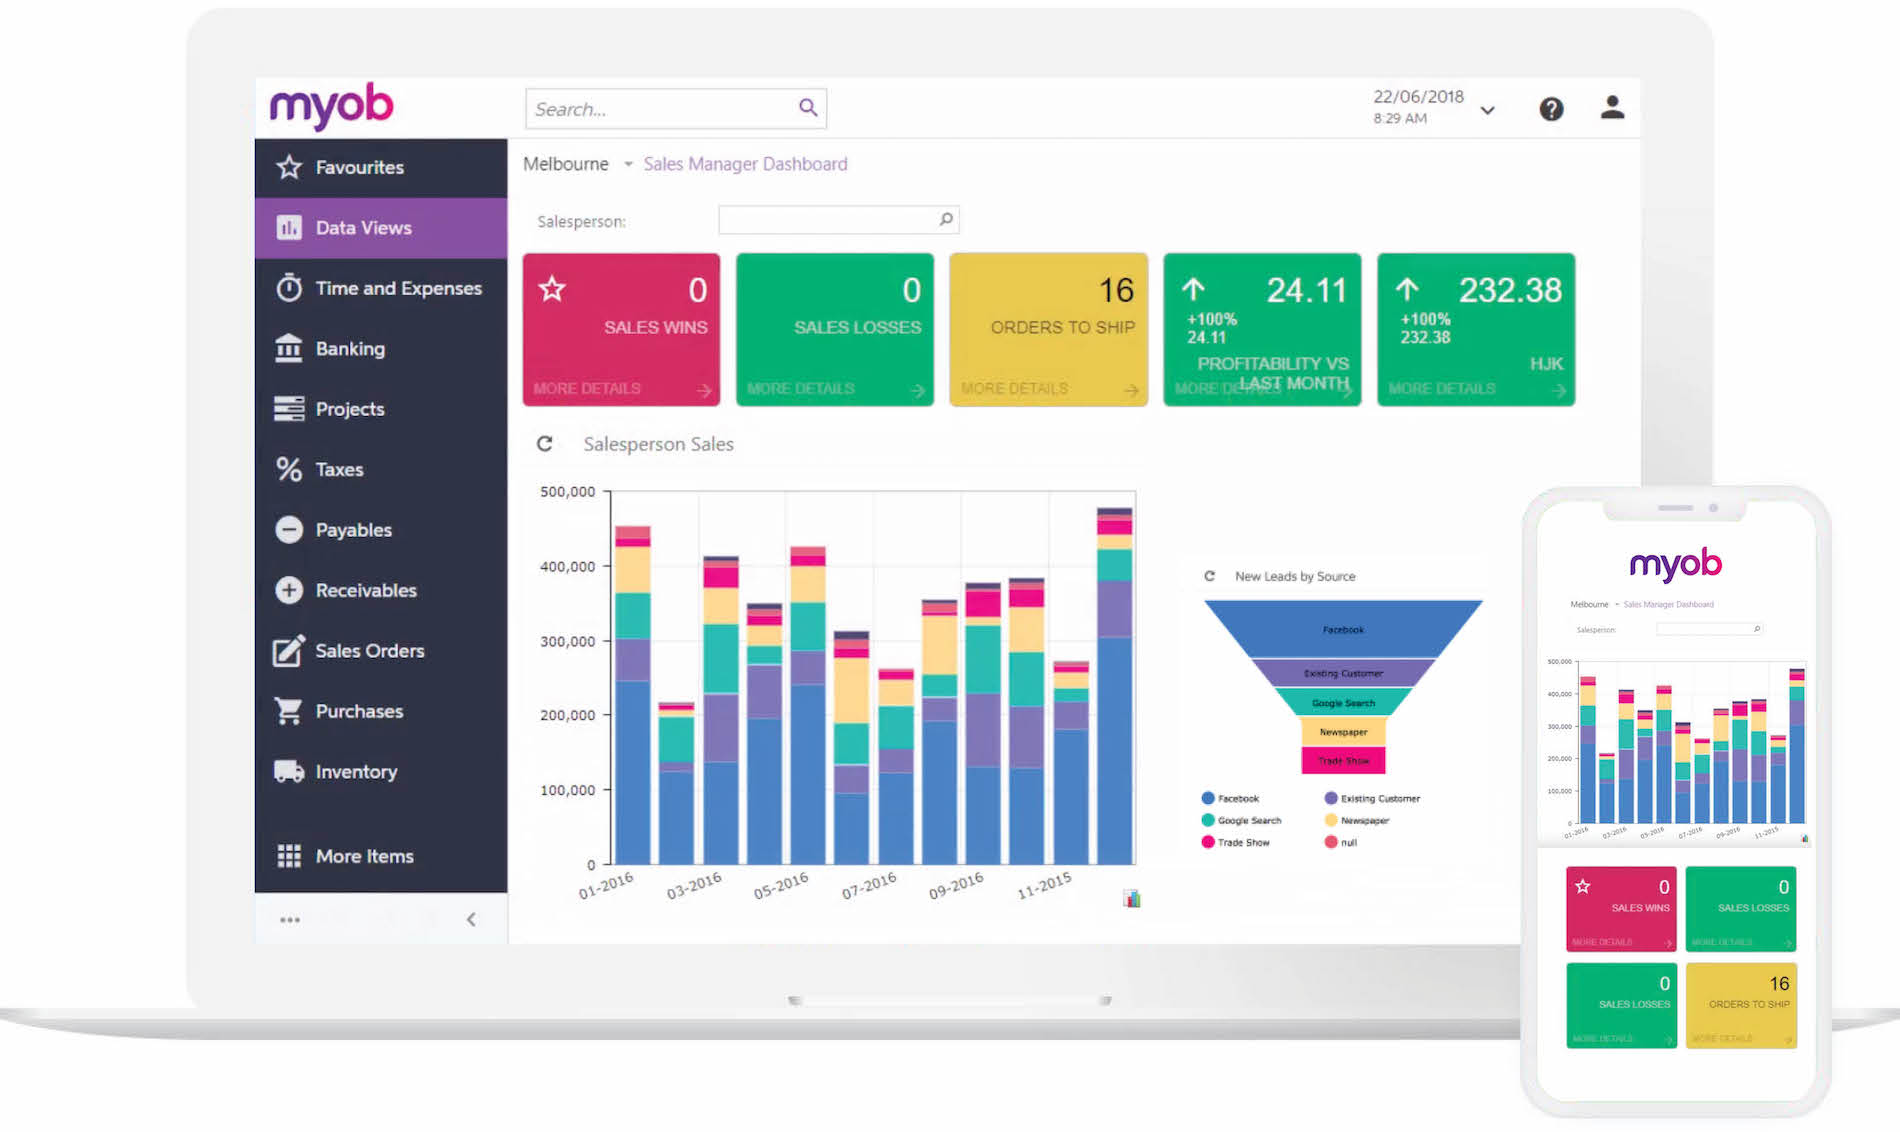 MYOB-dashboard-1